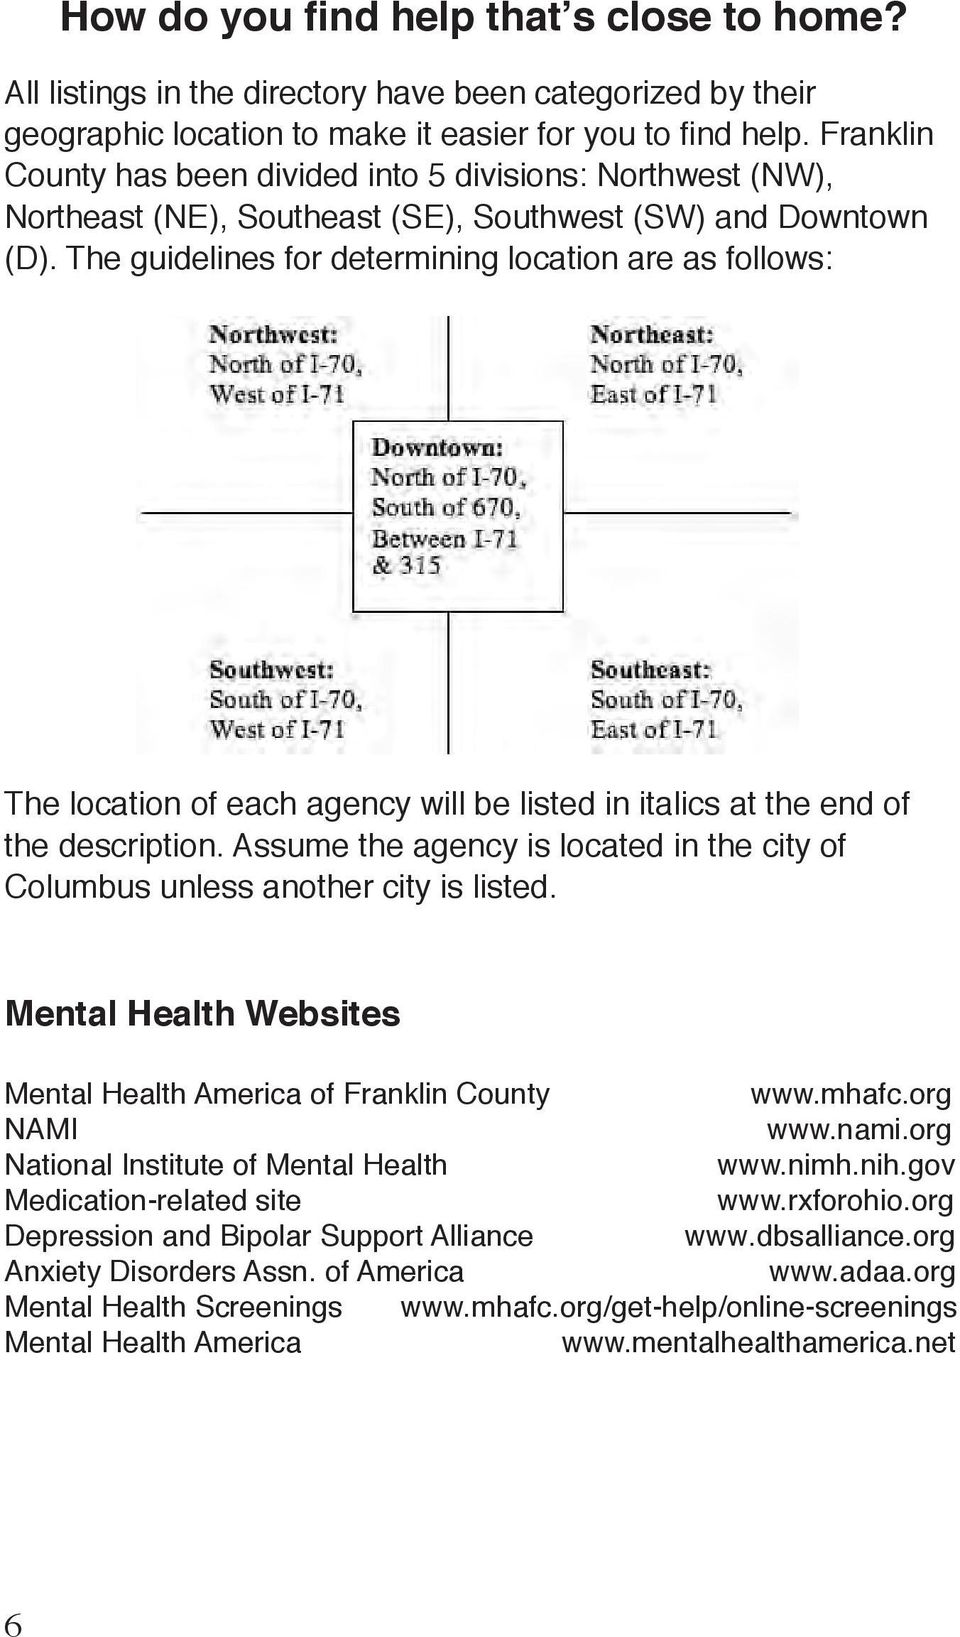 Assume the agency is located in the city of Columbus unless another city is listed. Mental Health Websites Mental Health America of Franklin County www.mhafc.org NAMI www.nami.